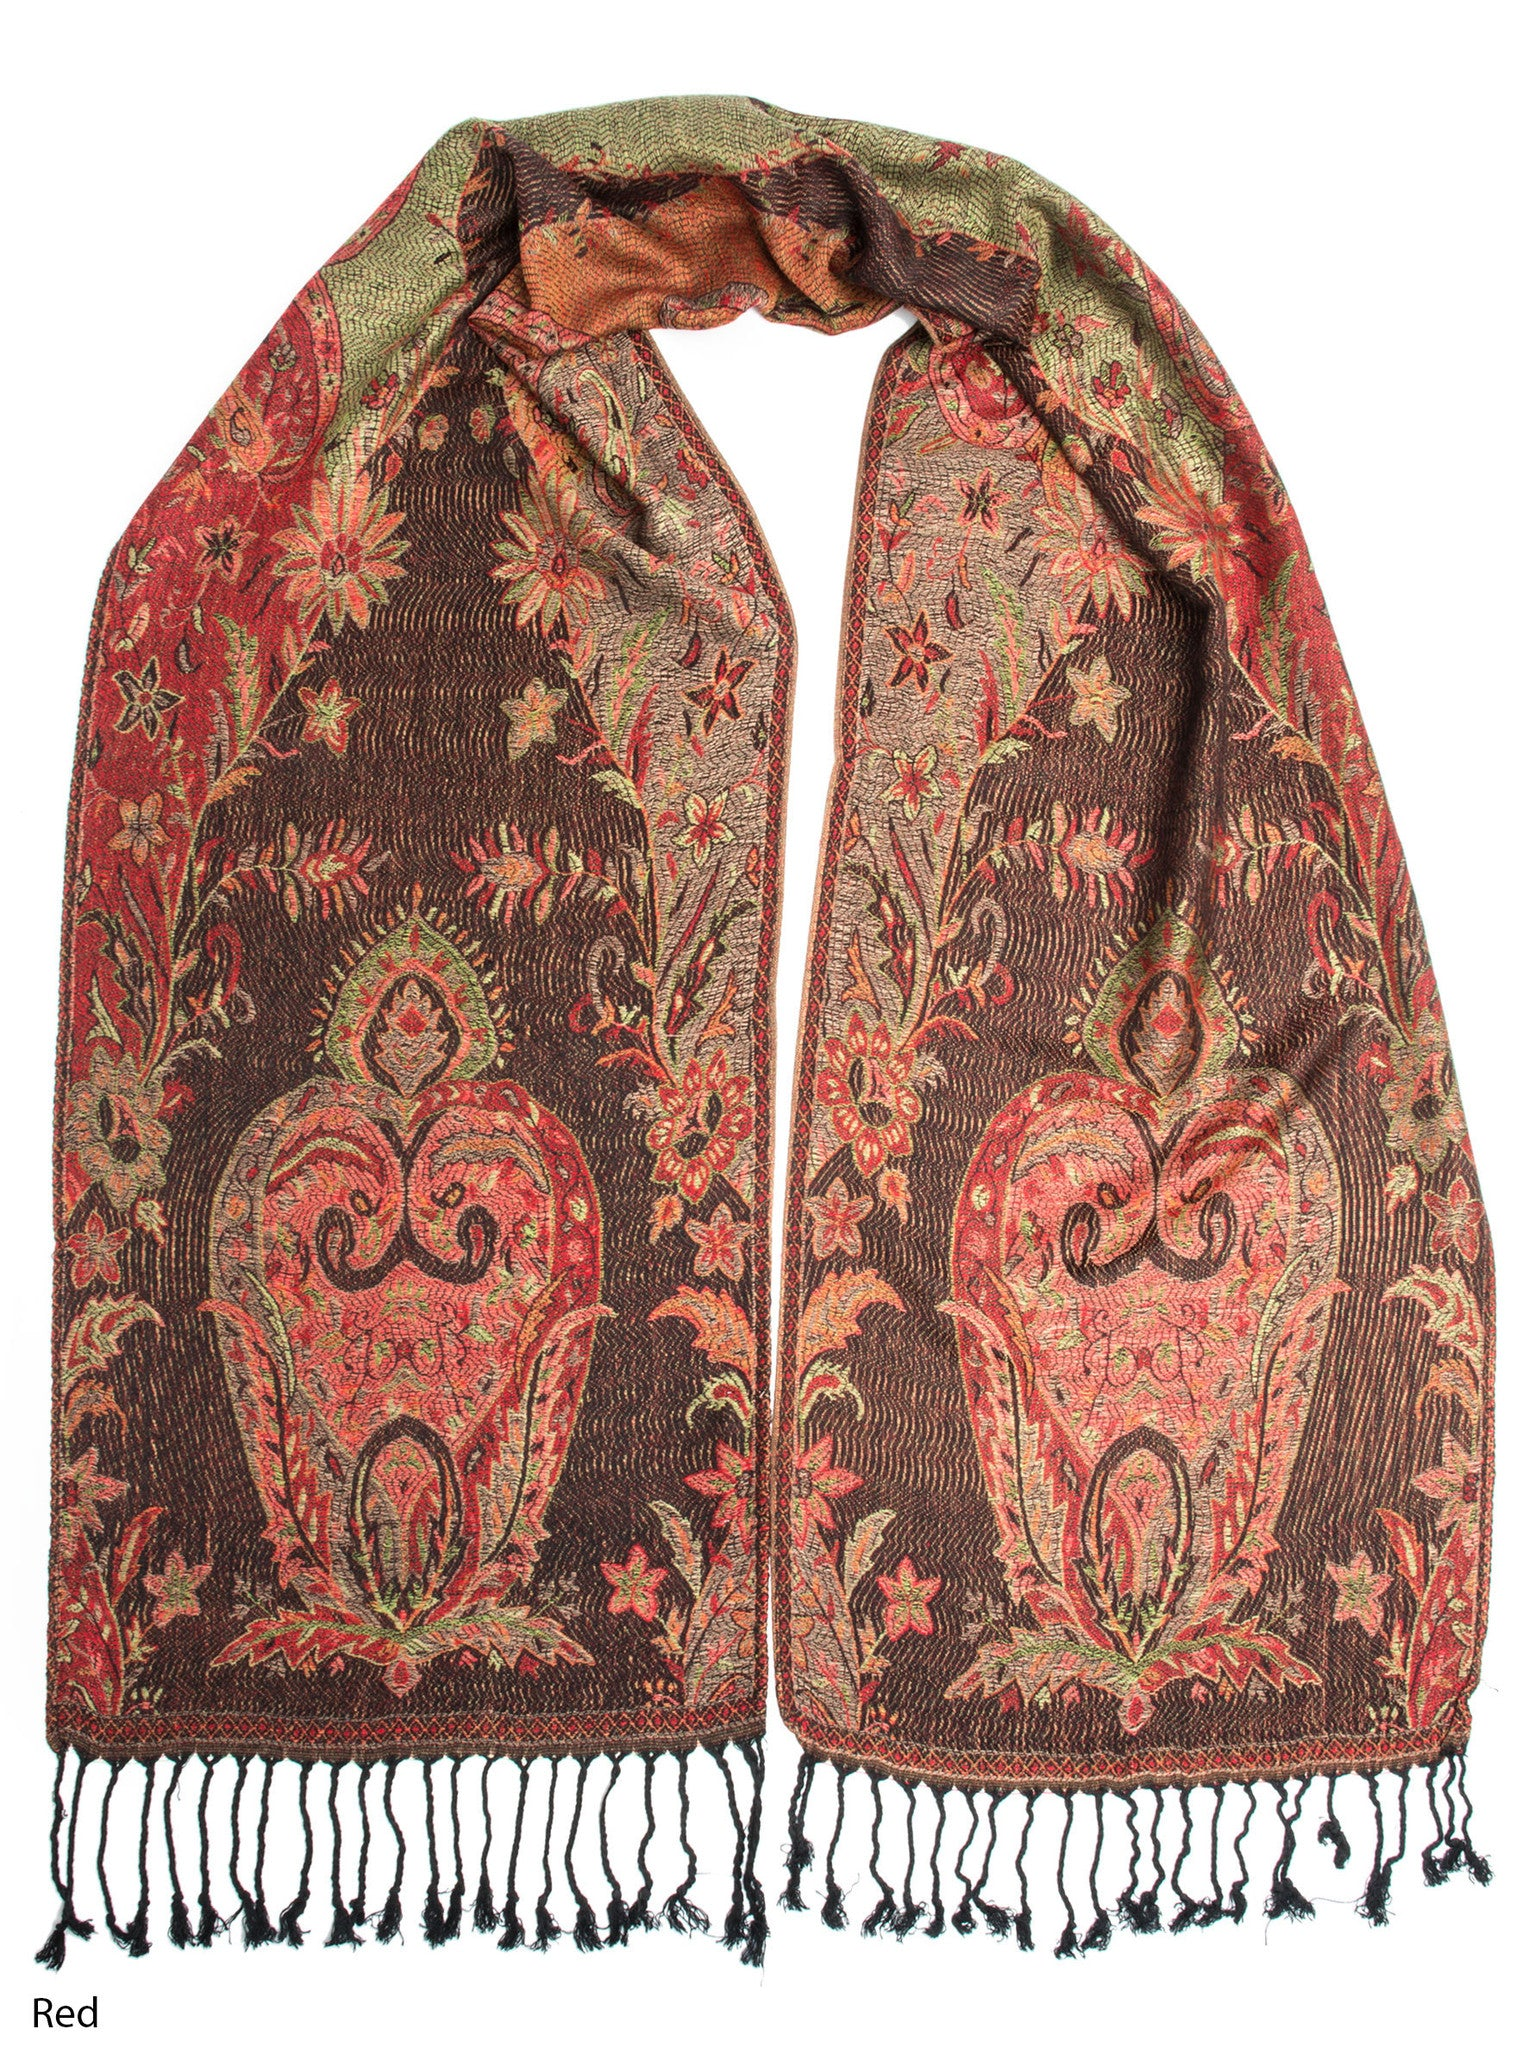 Scarves - Ramaya Scarf, Reversible Pashmina Indian Paisley Traditional Jacquard Scarf -(Red) Bohomonde  - 9